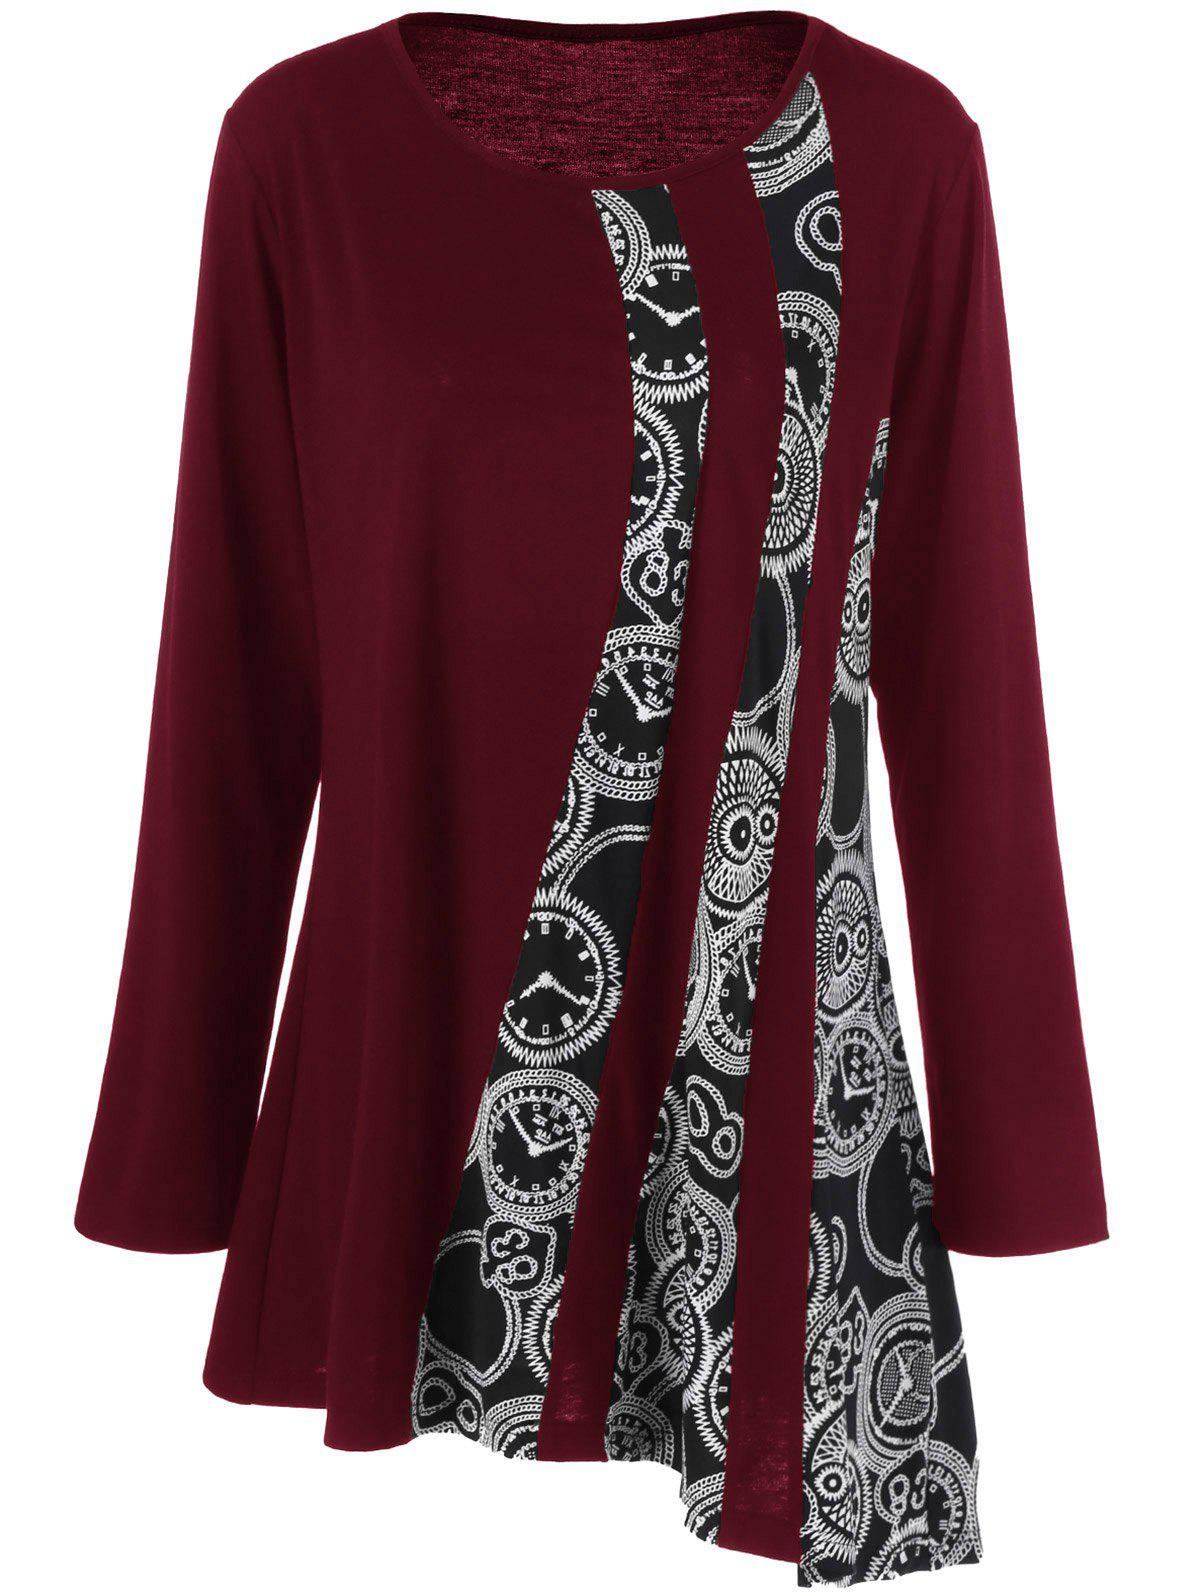 Plus Size Printed Asymmetric Tunic T-ShirtWOMEN<br><br>Size: 4XL; Color: DEEP RED; Material: Polyester,Spandex; Shirt Length: Long; Sleeve Length: Full; Collar: Scoop Neck; Style: Fashion; Season: Fall,Spring; Pattern Type: Print; Weight: 0.3200kg; Package Contents: 1 x T-Shirt;